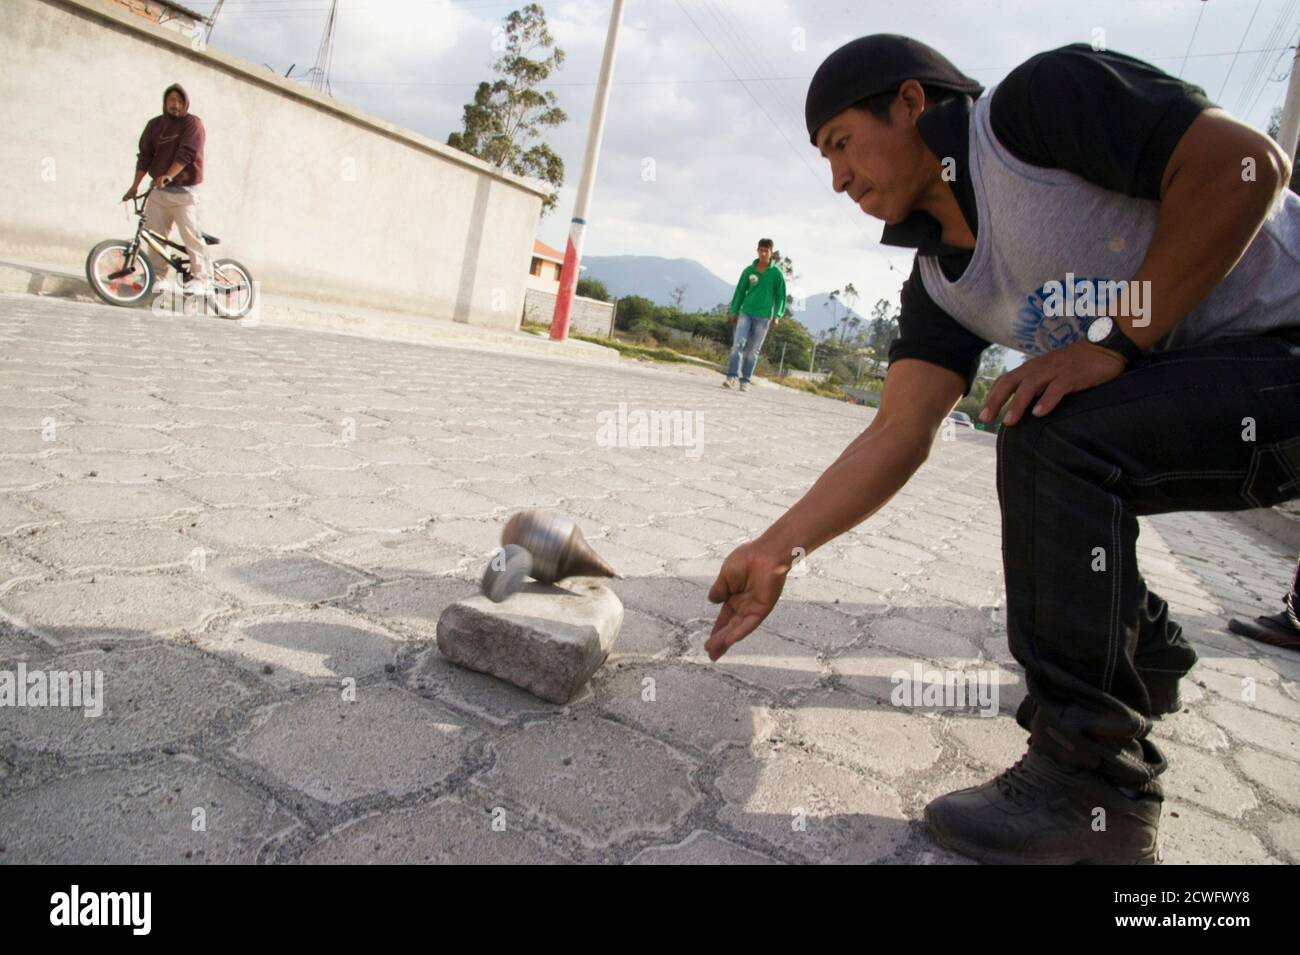 """A resident hits his """"trompo gigante"""" to play a """"cave"""" during a game of """"trompo gigante"""" in Cotacachi, about 120 km (75 miles) north of Quito September 8, 2012. Fifteen teams, each made up of 10 members, representing different neighbourhoods of the village compete to see who can hit """"la bola"""" from the start point in the main park to the finishing point about 8-10 km (5-6.2 miles) away through the streets of Cotacachi with the least number of """"caves"""", or hits. The game, an annual event, runs from August to November and was started in the village famous for its leather 17 years ago. The contestan Stock Photo"""